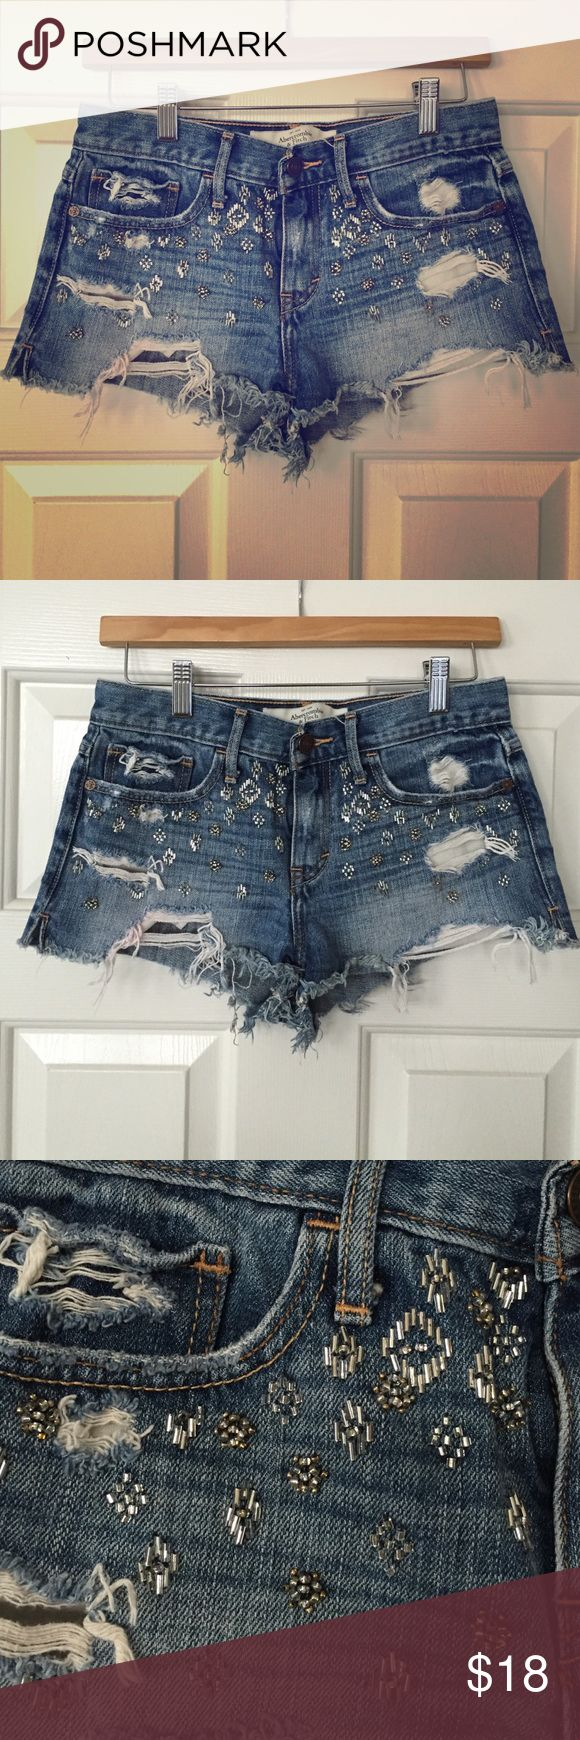 Abercrombie & Fitch Distressed Embellished Shorts Gently Preloved Abercrombie & Fitch Shorts Jean Shorts